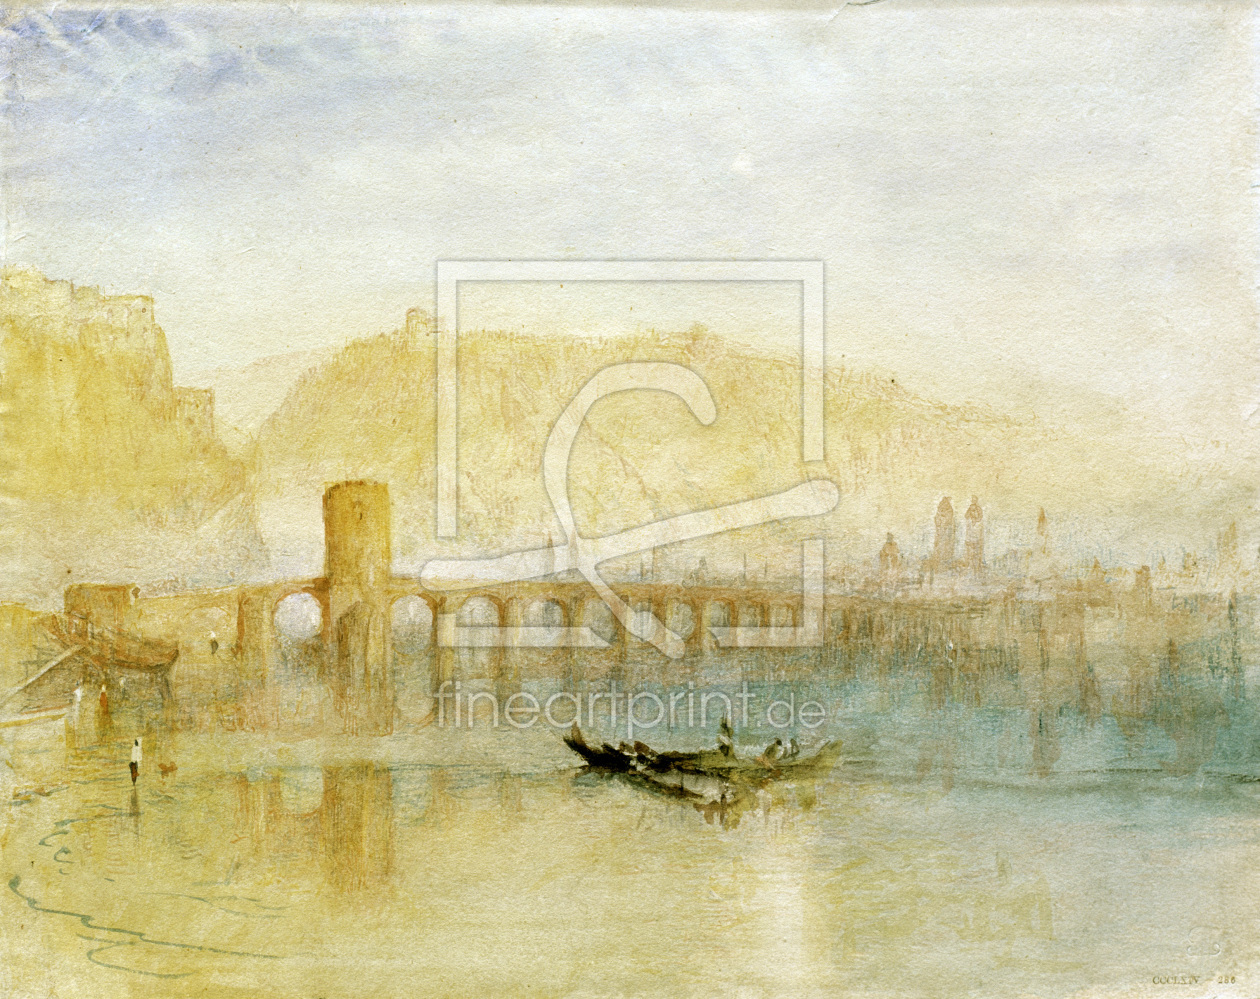 Bild-Nr.: 30008161 William Turner / Mosel Bridge / Coblenz erstellt von Turner, Joseph Mallord William